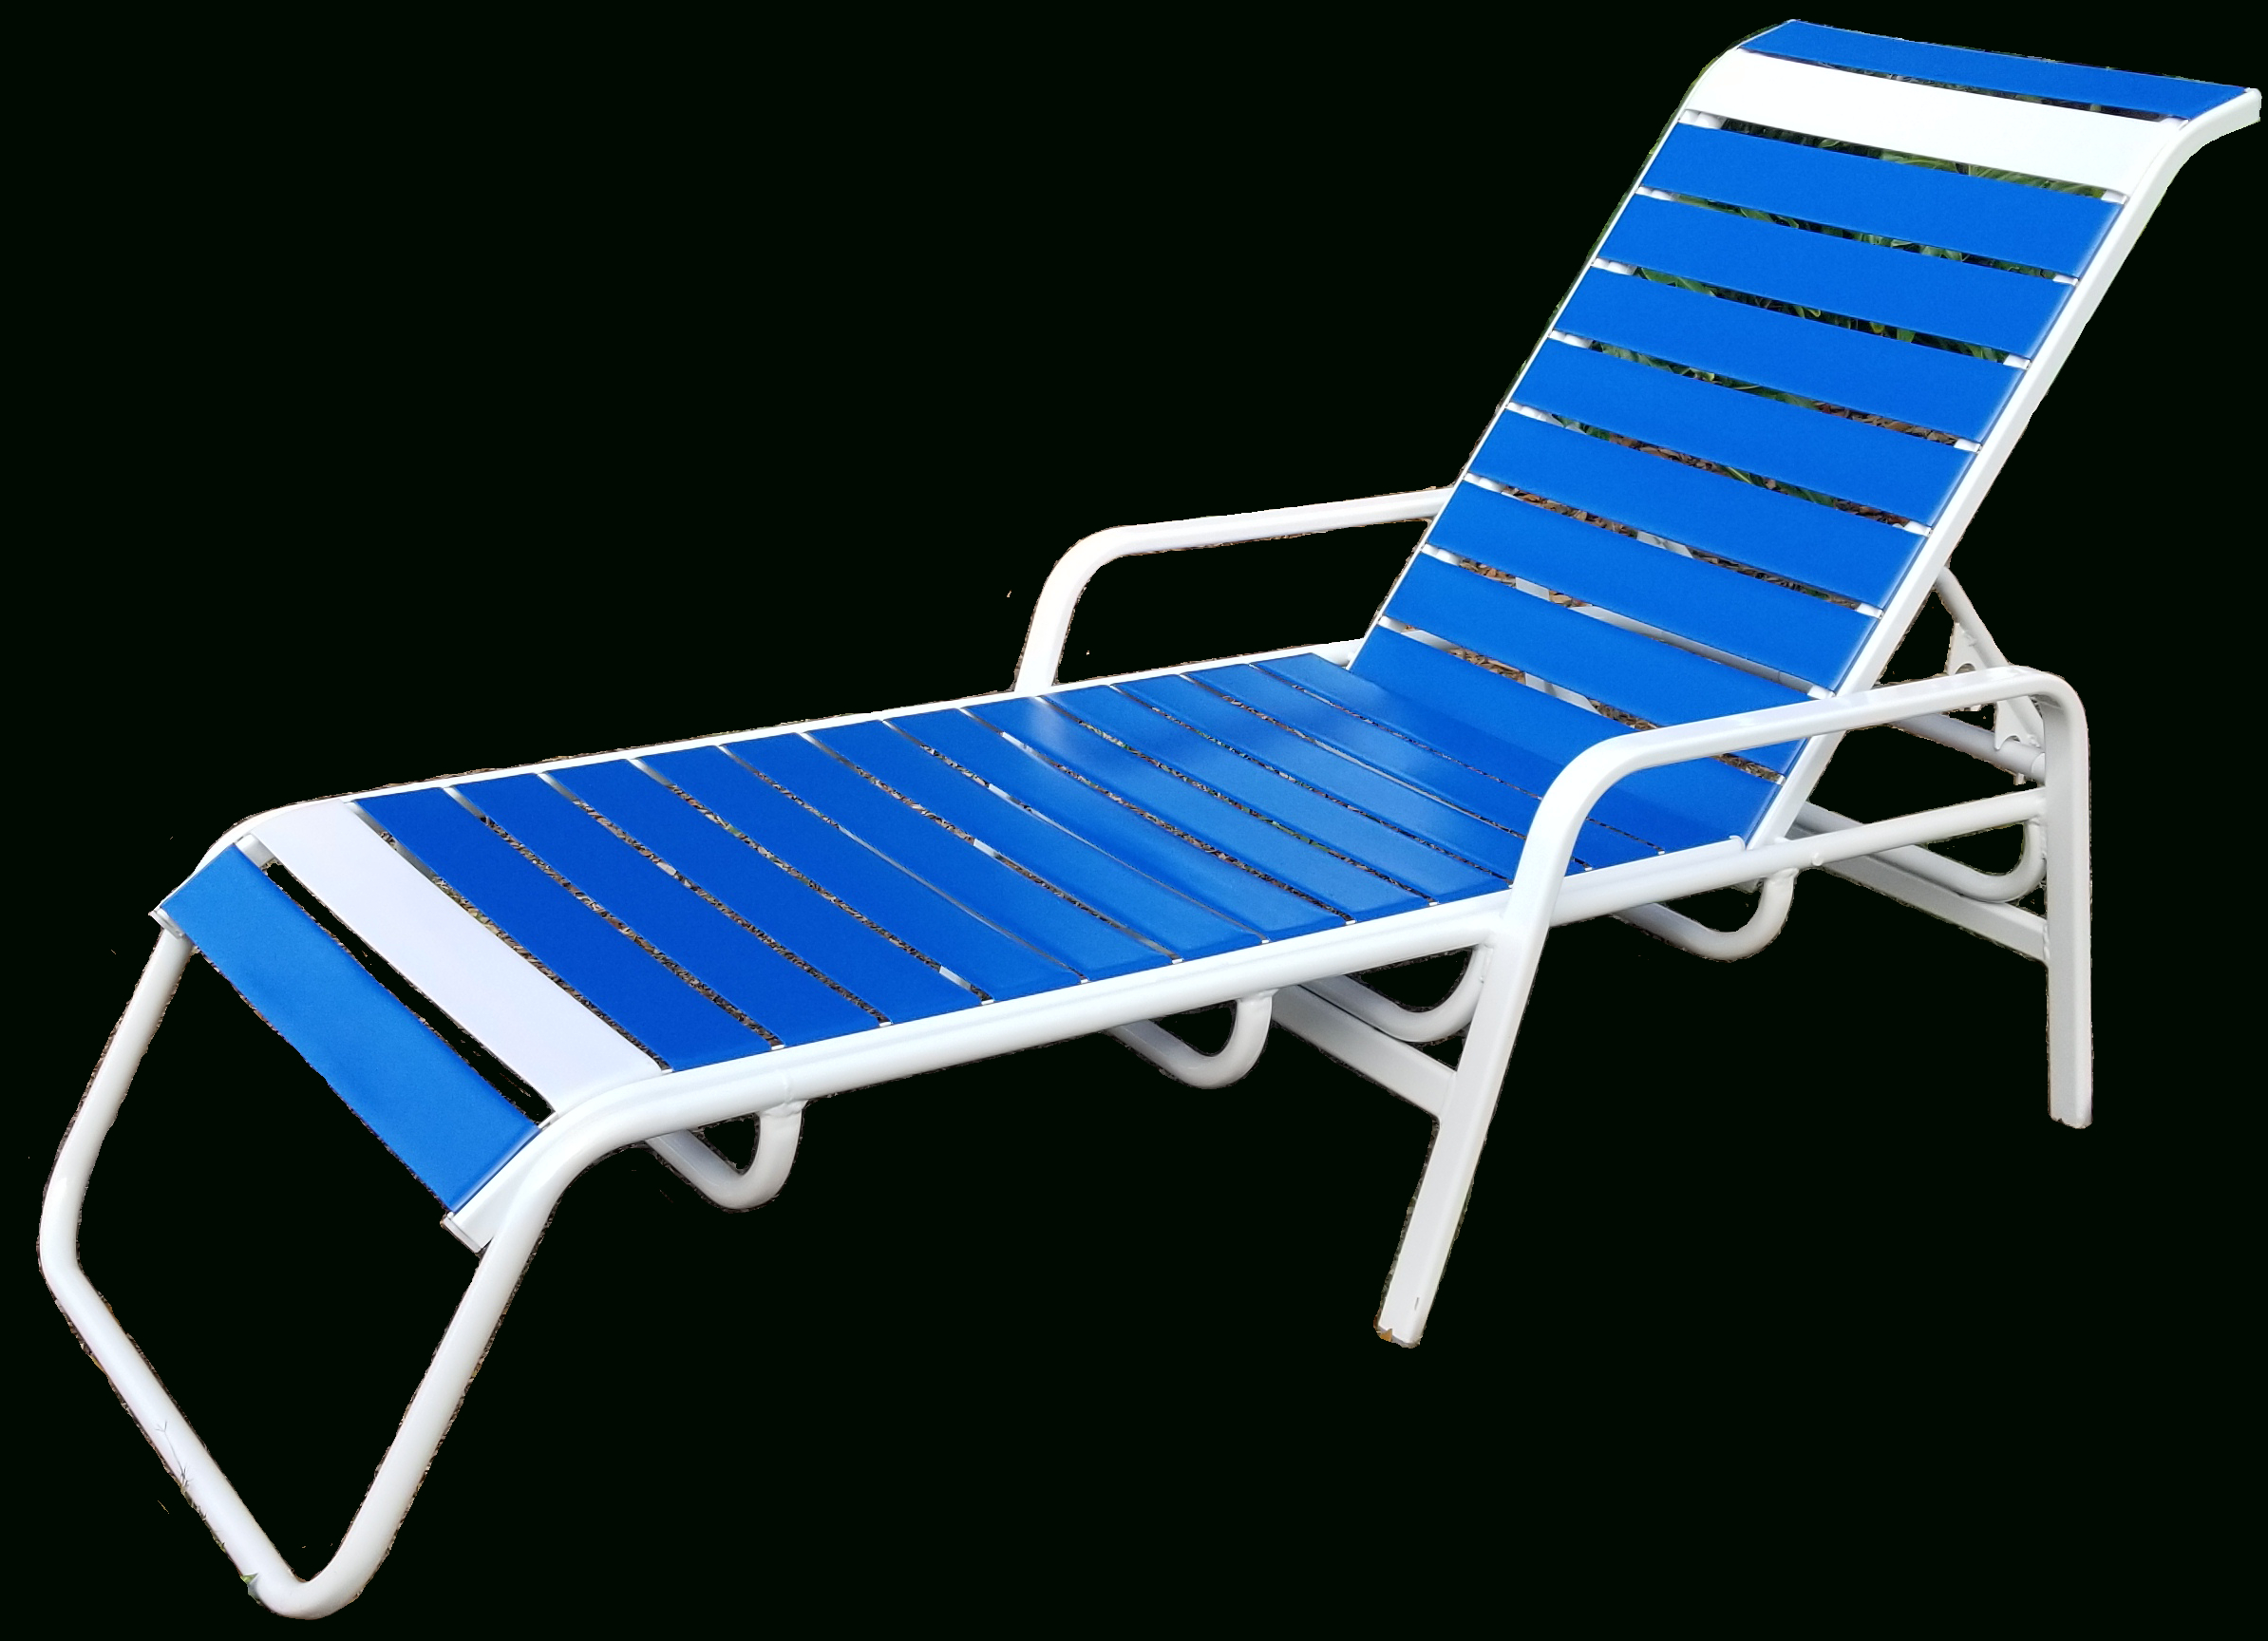 Most Recently Released Jamaica Outdoor Wicker Chaise Lounges With Cushion With Wide Strap Lounge R 150ez (View 22 of 25)